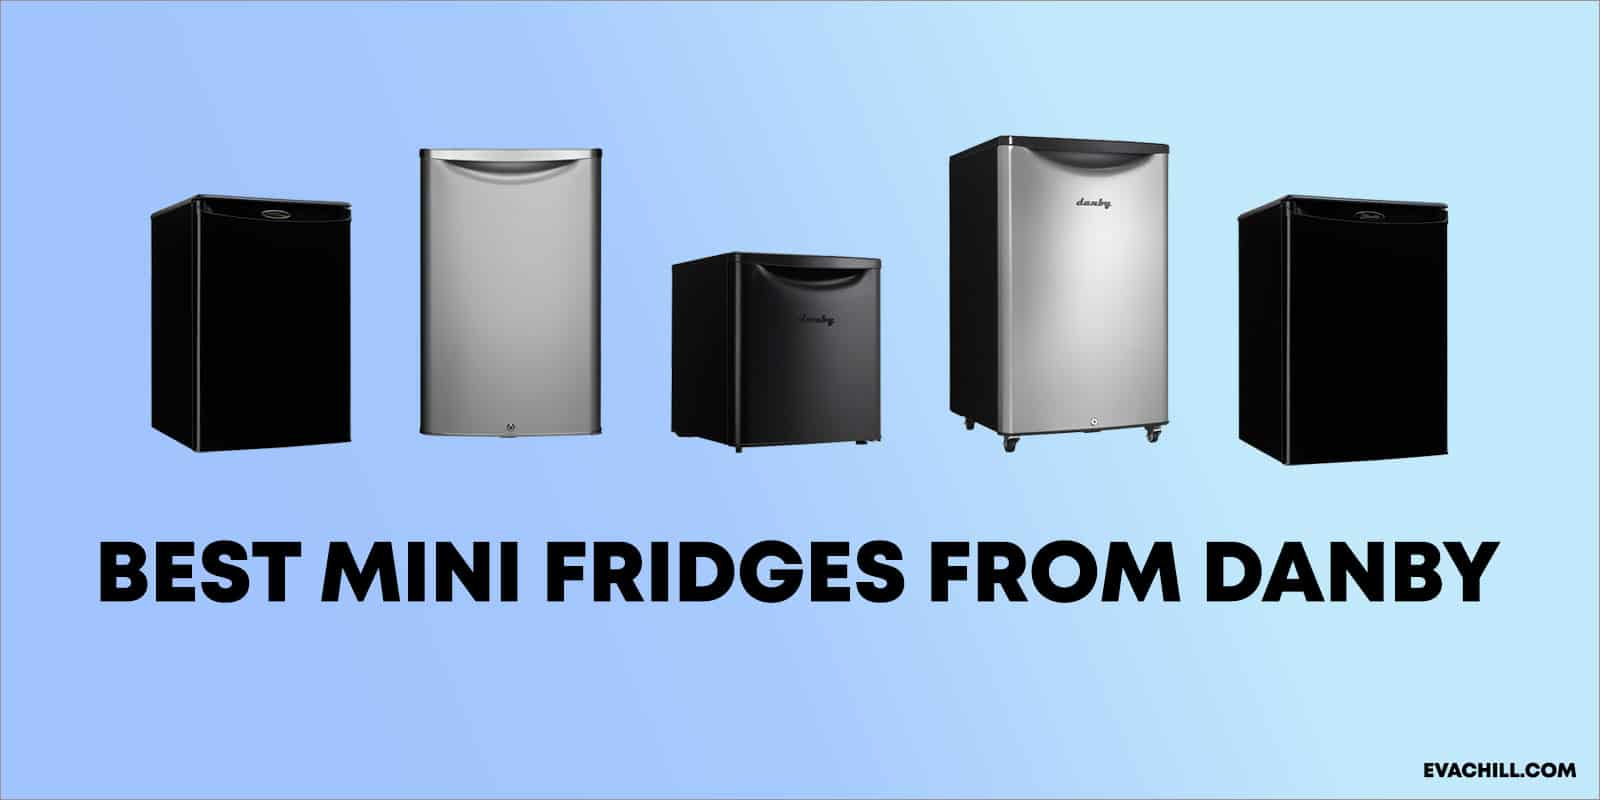 Danby Mini Refrigerators